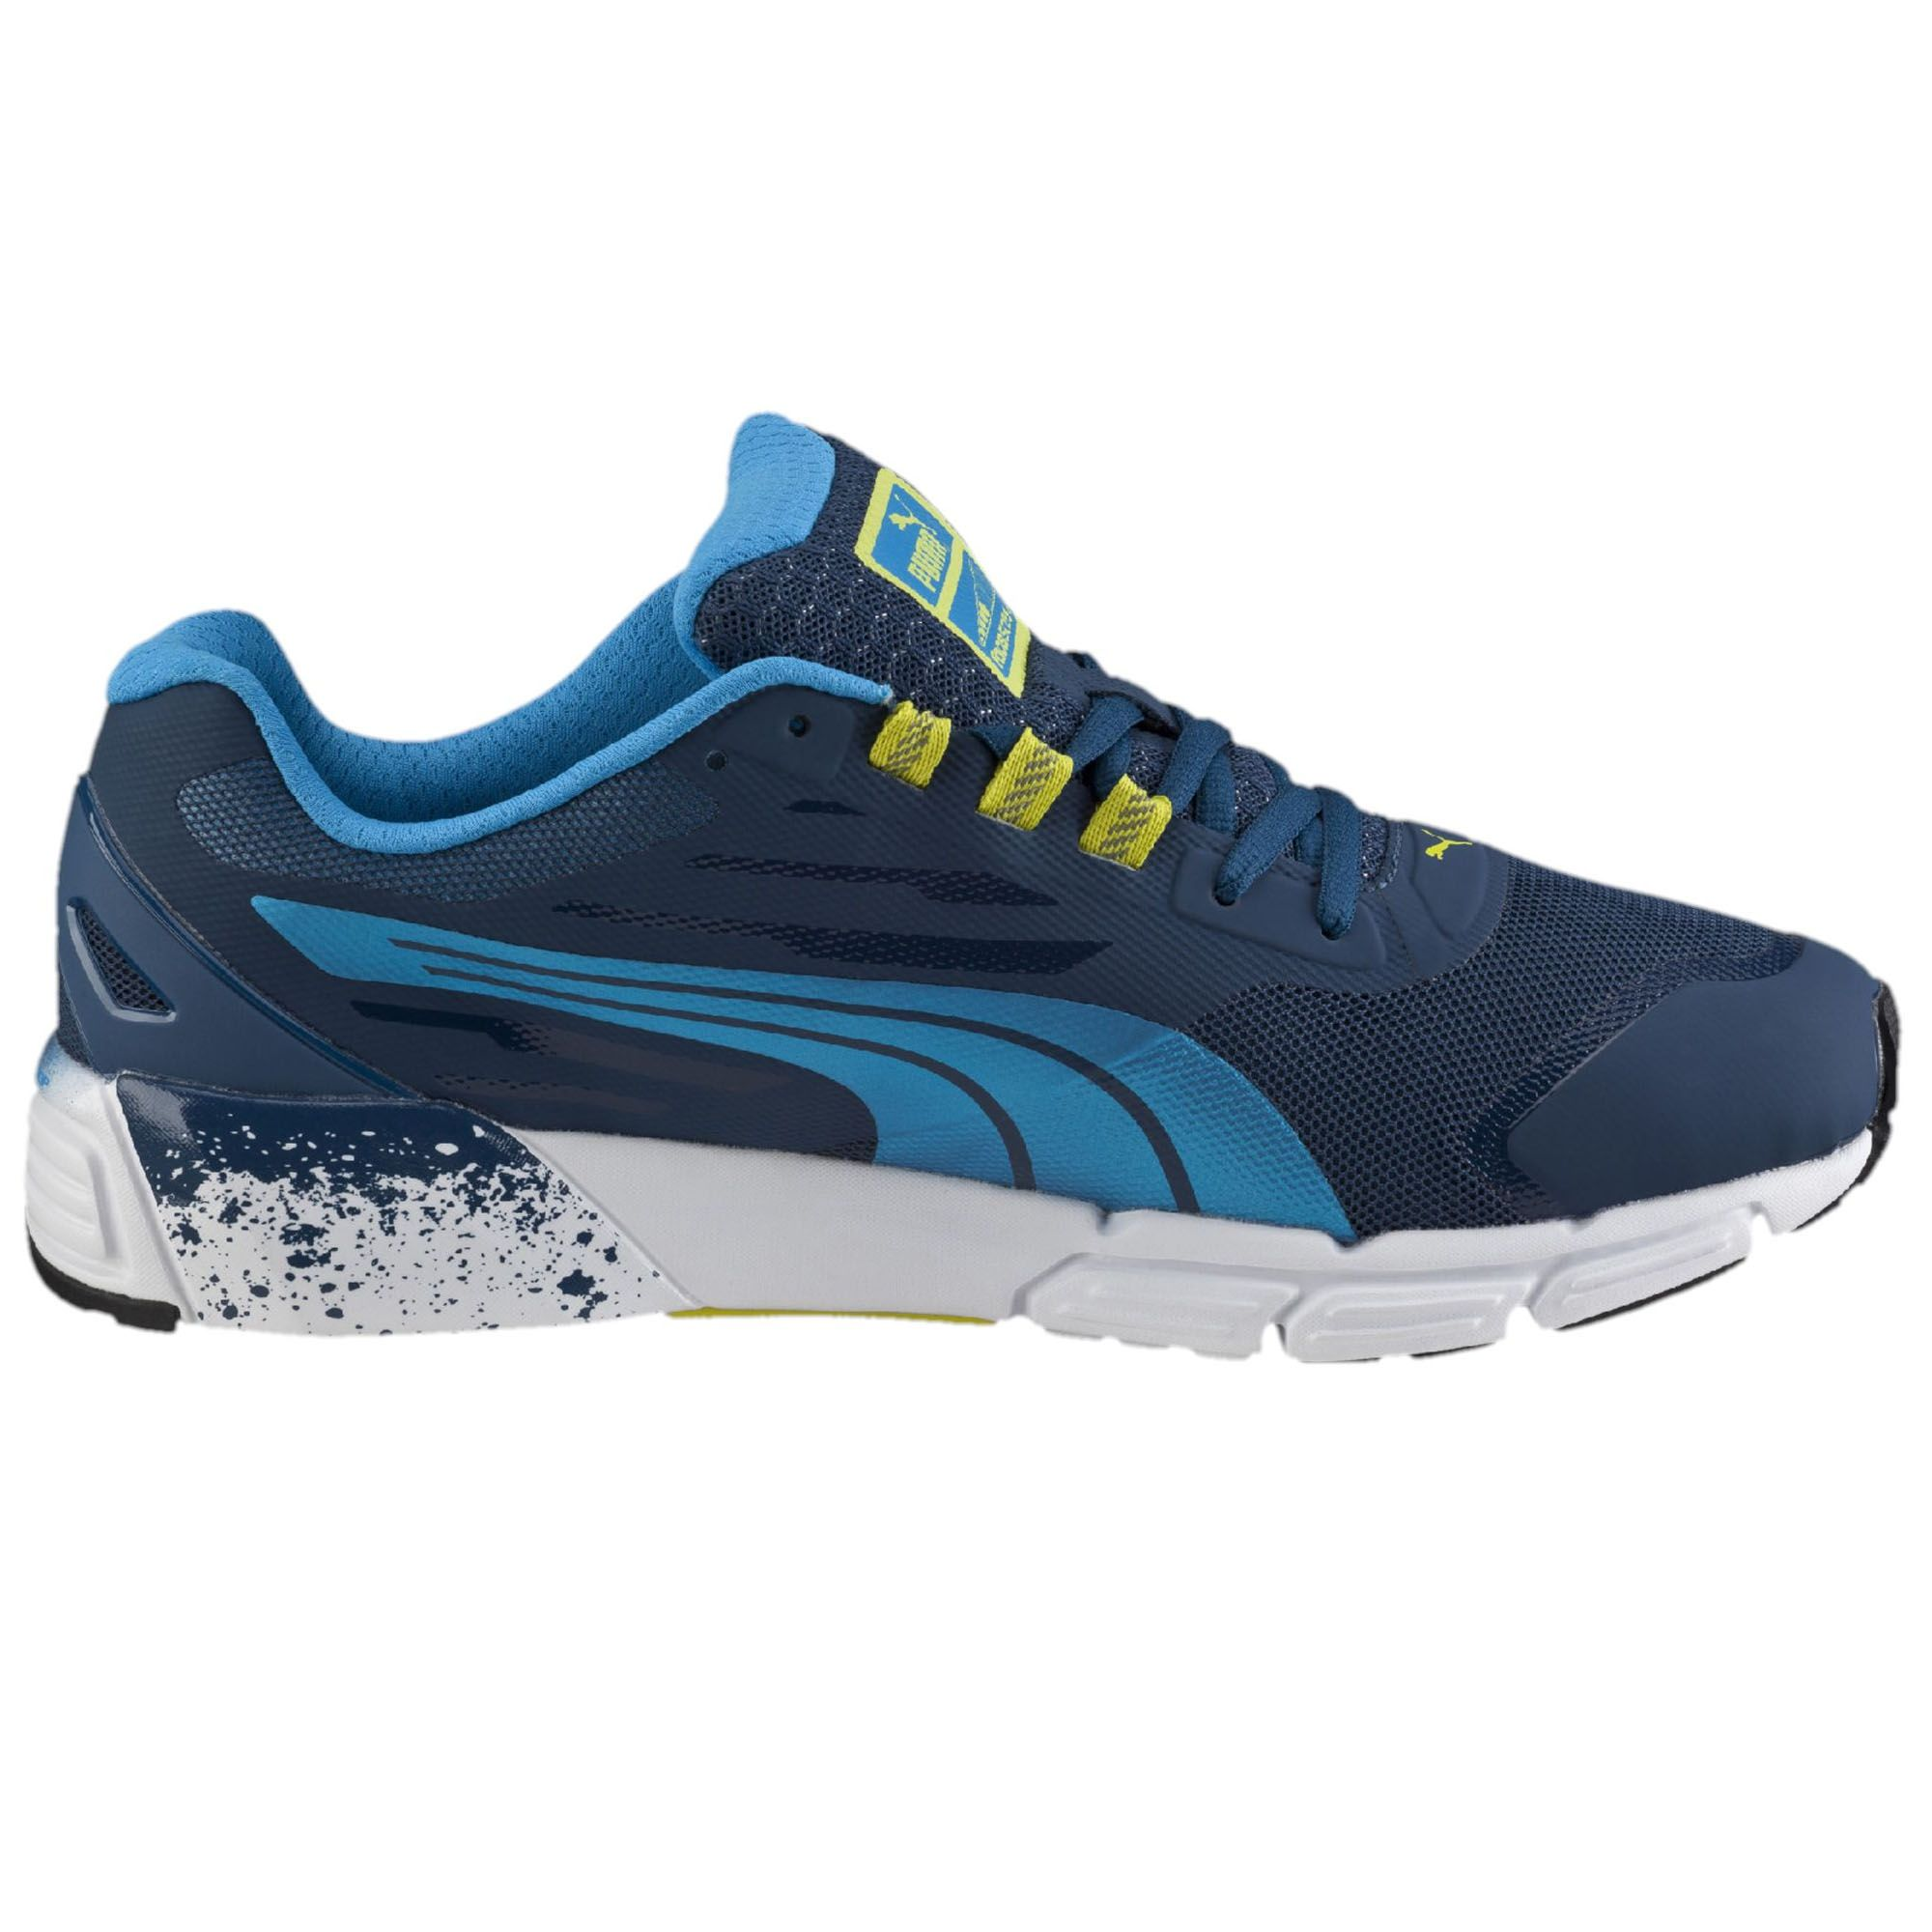 puma faas 500 s v2 mens running shoes sweatbandcom